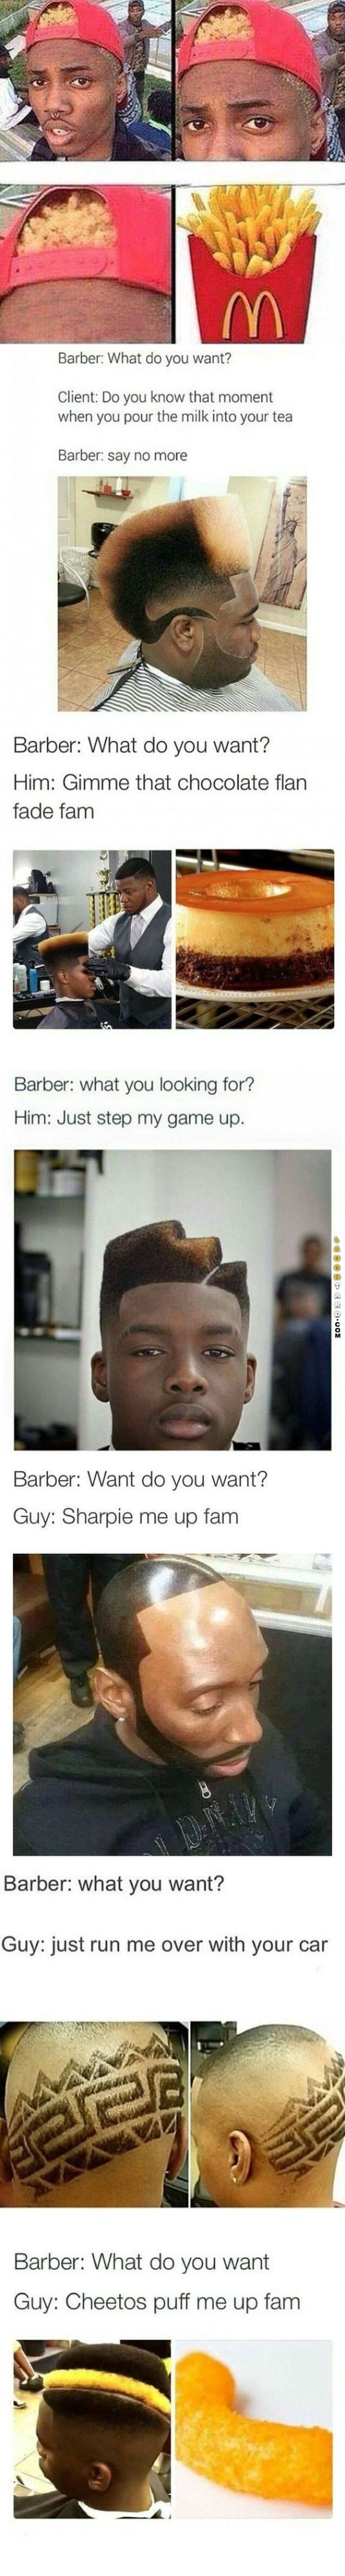 How often do men get haircuts funny haircuts this barber is awesome  a good laugh  pinterest